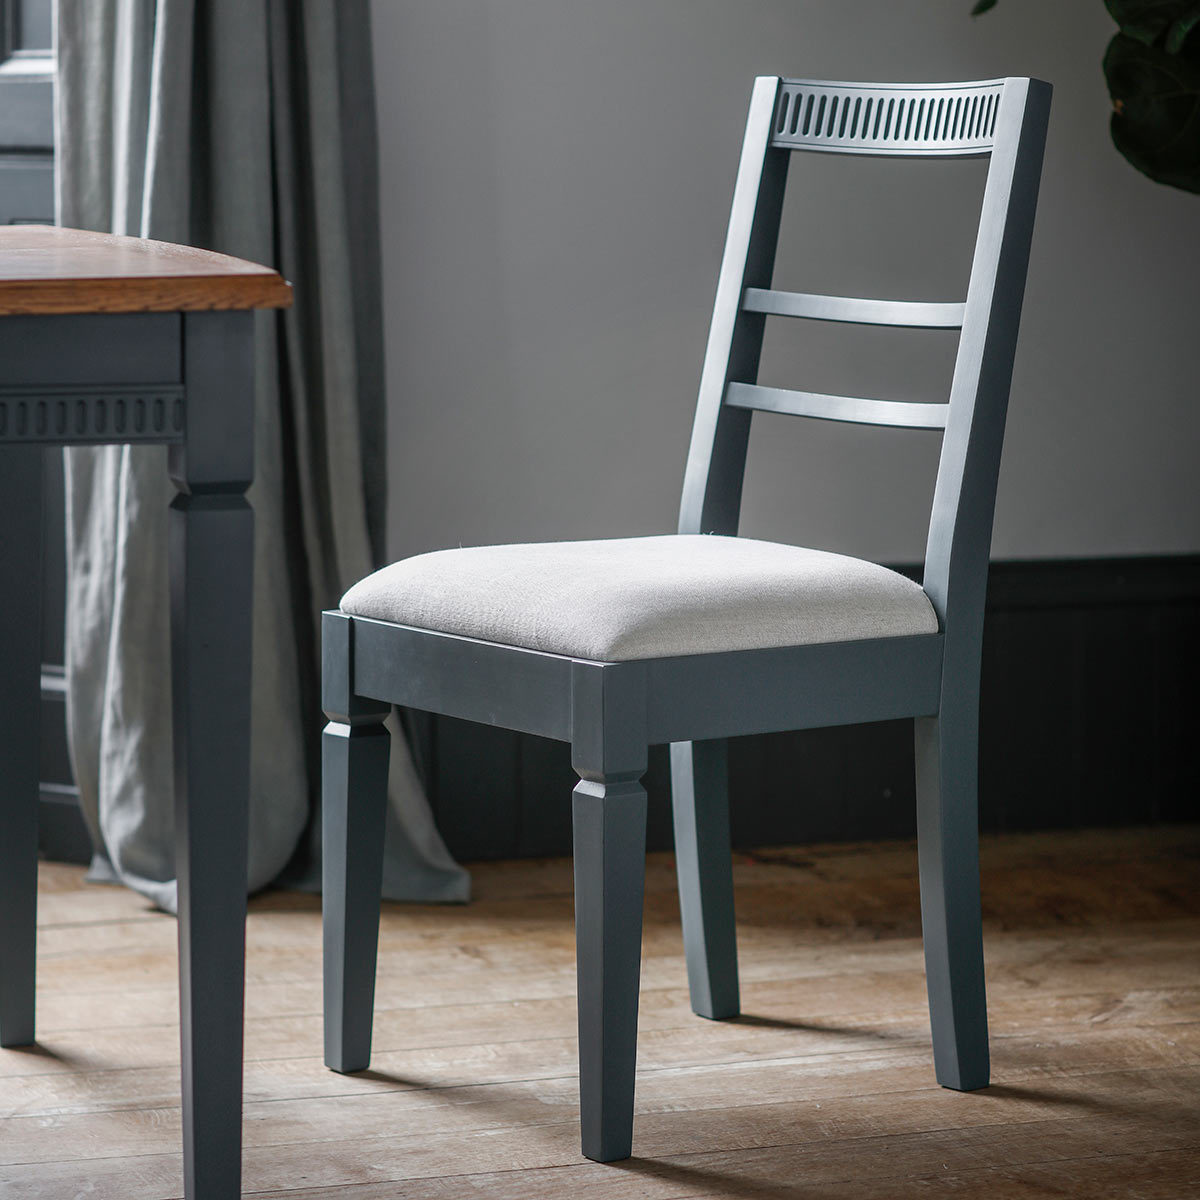 Blue Dining Chairs Bronte Painted Storm Blue Dining Chair 2 Pack Costco Uk